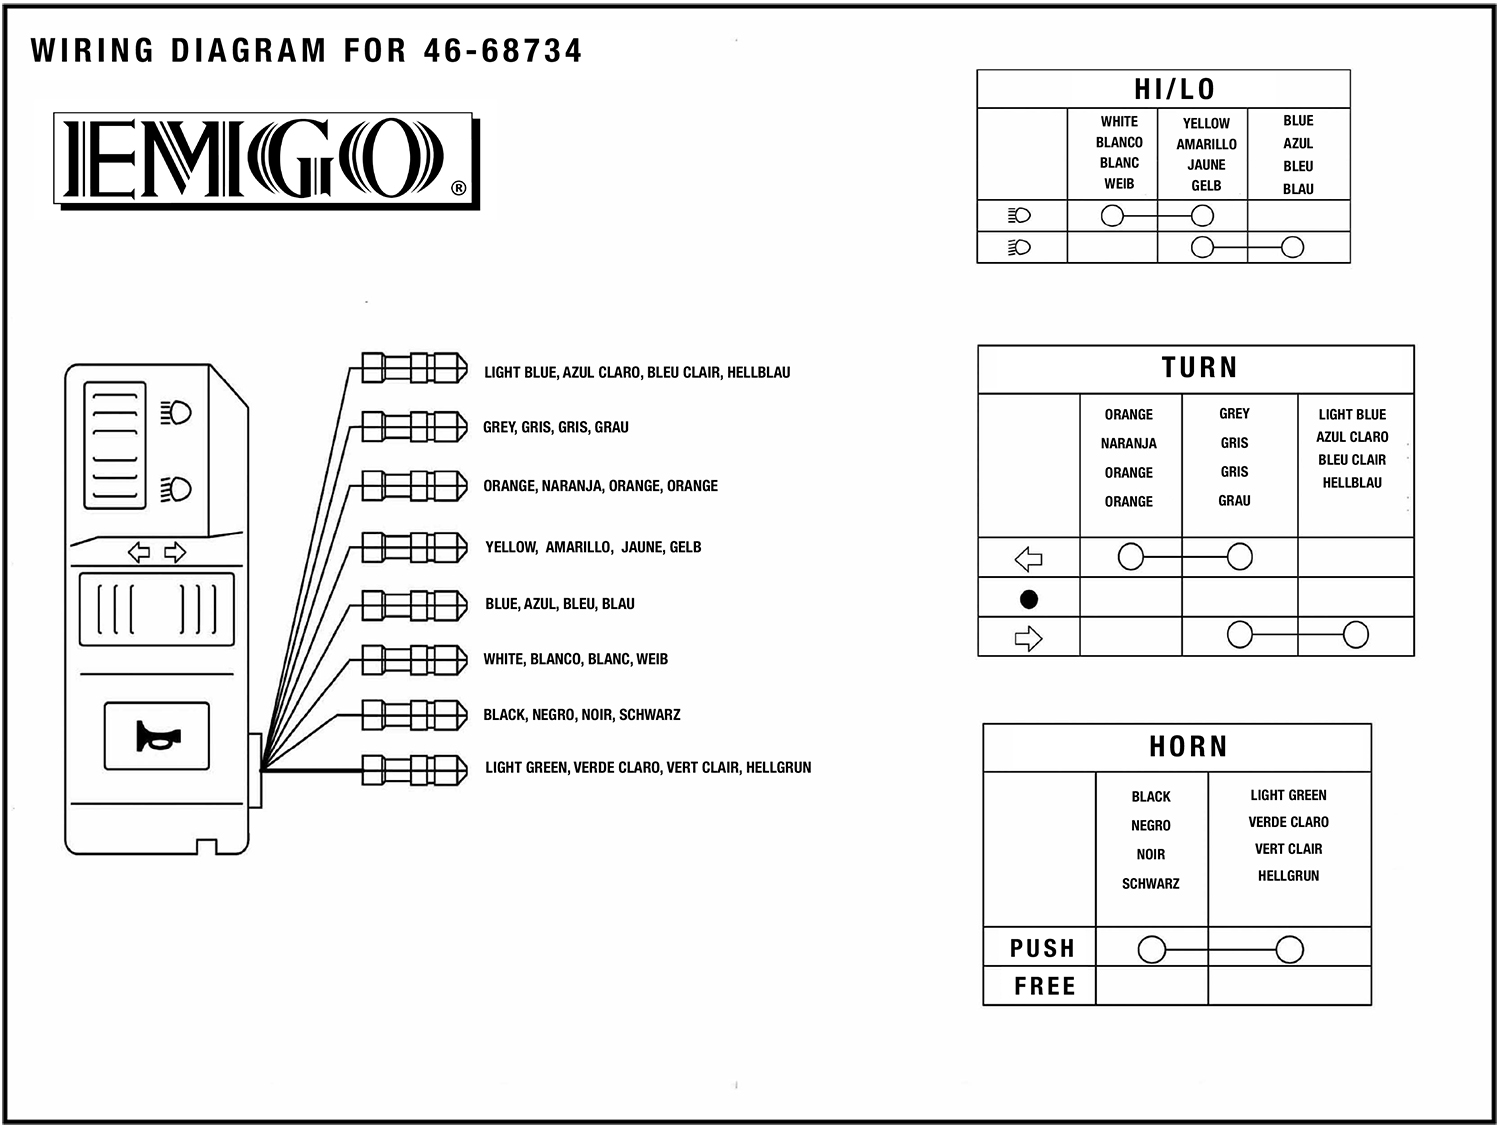 46 68734 wiring diagram left emgo schematic pin out handlebar multi switch motorcycle?t=1490389479 emgo universal handlebar multi switch left 46 68734 wiring honda xr100 wiring diagram at gsmportal.co